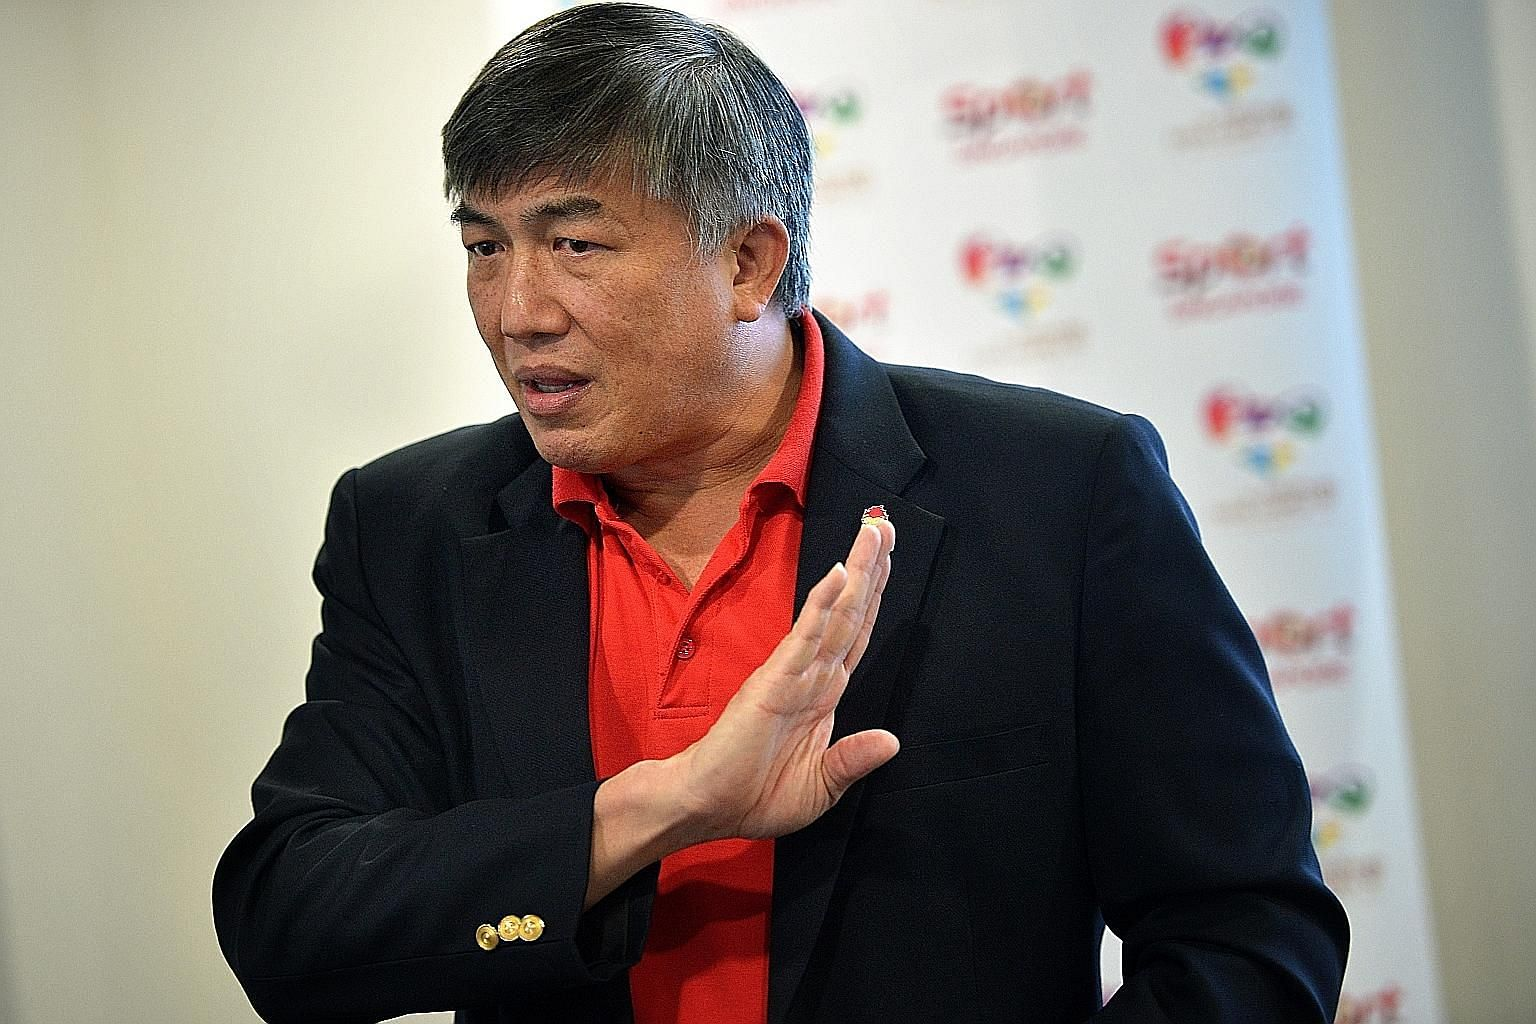 Singapore Asean Para Games Organising Committee chairman Lim Teck Yin says the athletes have the choice to take the train or bus.